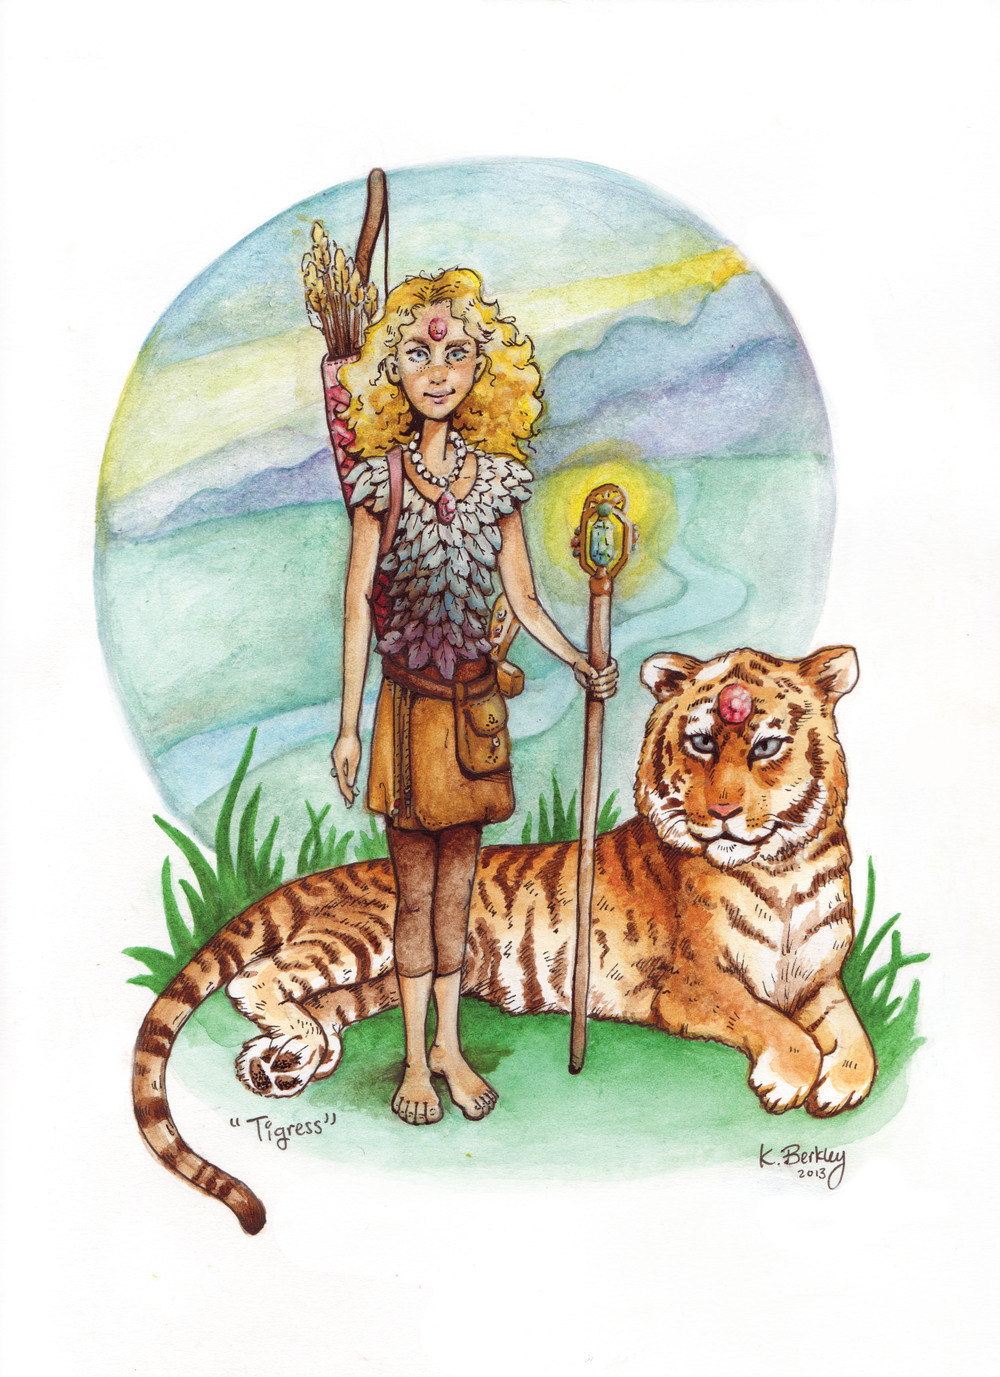 """Tigress : An Elliot Berkley Character""  Fictional Heroine described in a 10-year olds short stories.  Watercolor on paper"